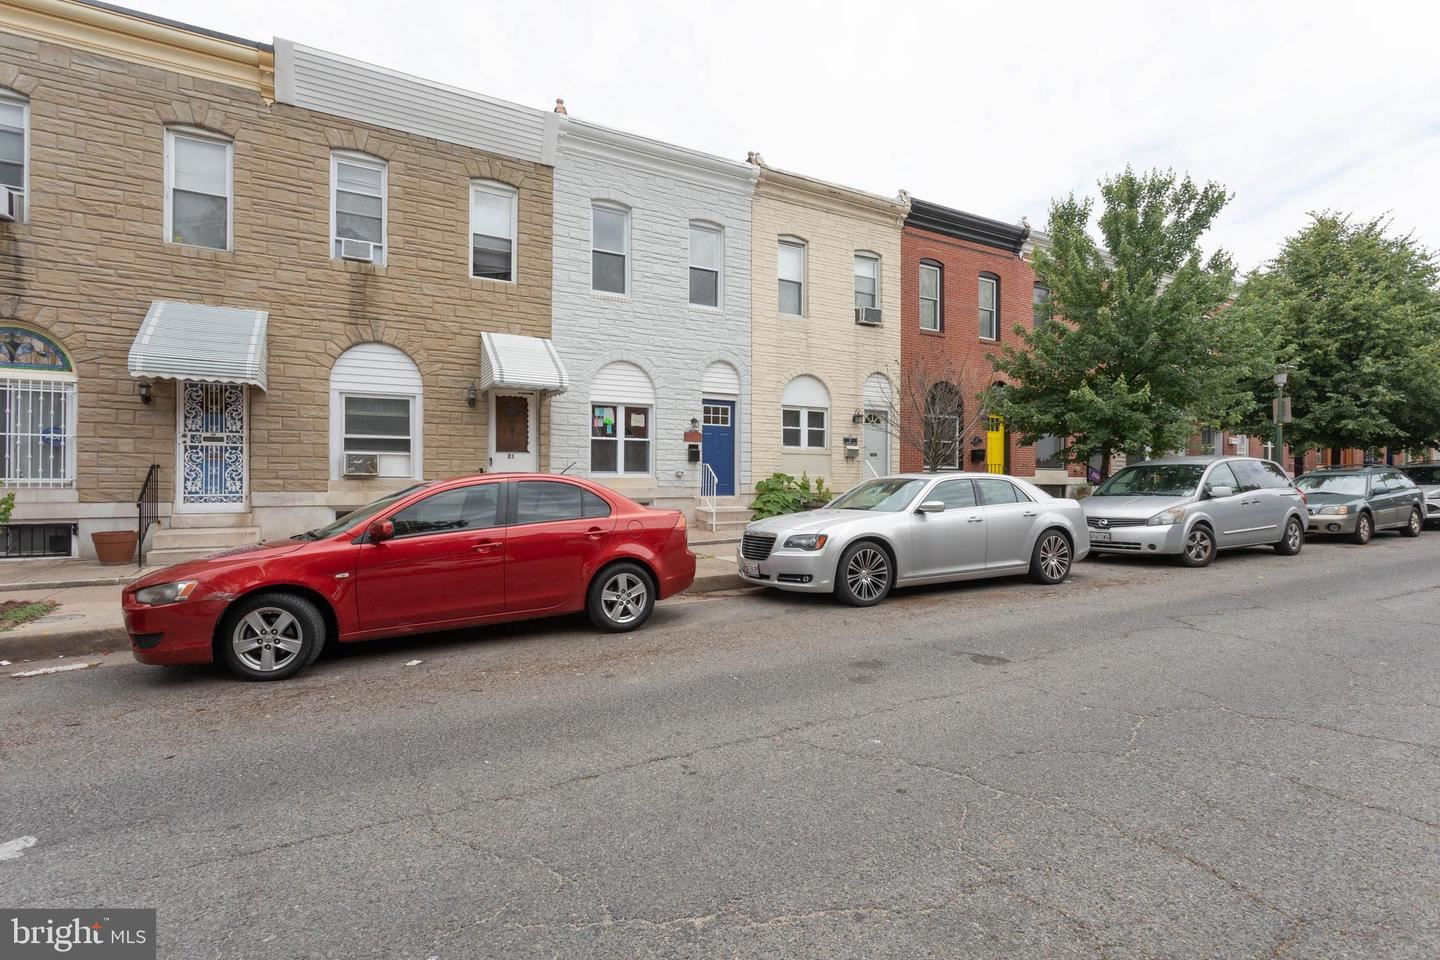 19 N KENWOOD AVE, Baltimore, MD 21224 - MLS#: MDBA530620